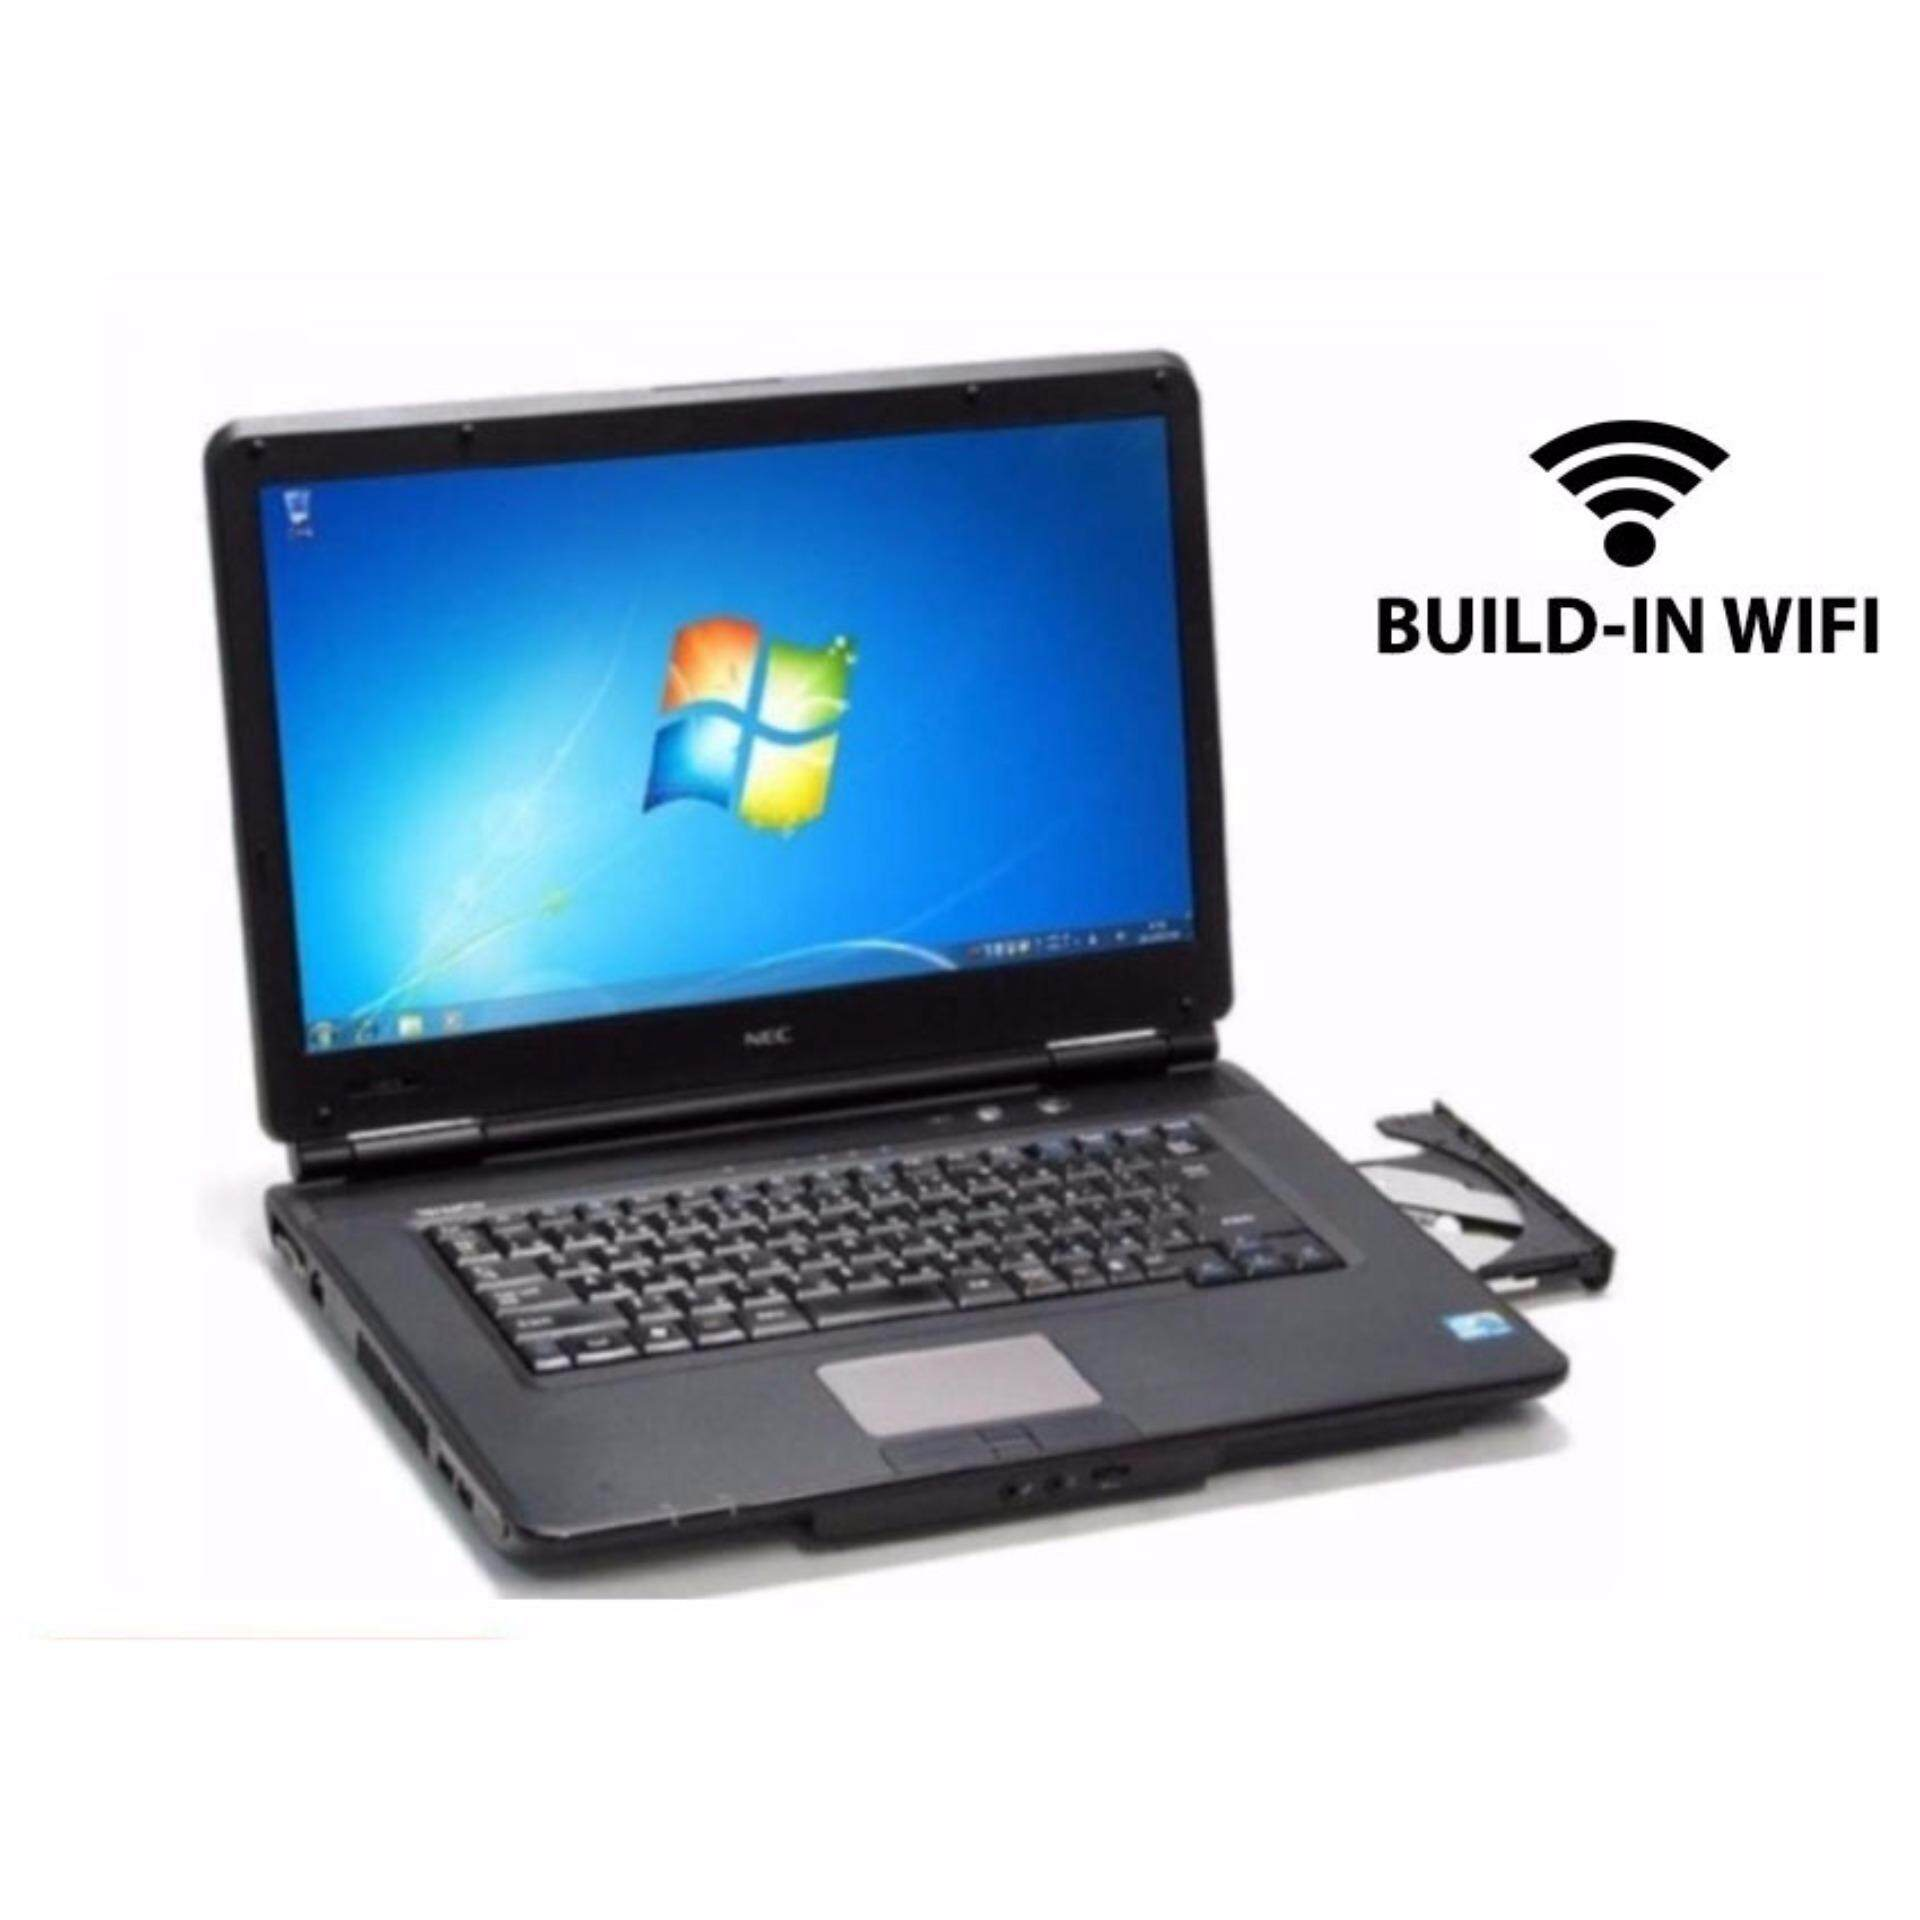 (REFURBISHED) Laptop NEC Intel Celeron 2GB RAM 250GB HDD DVD 15 NOTEBOOK Malaysia